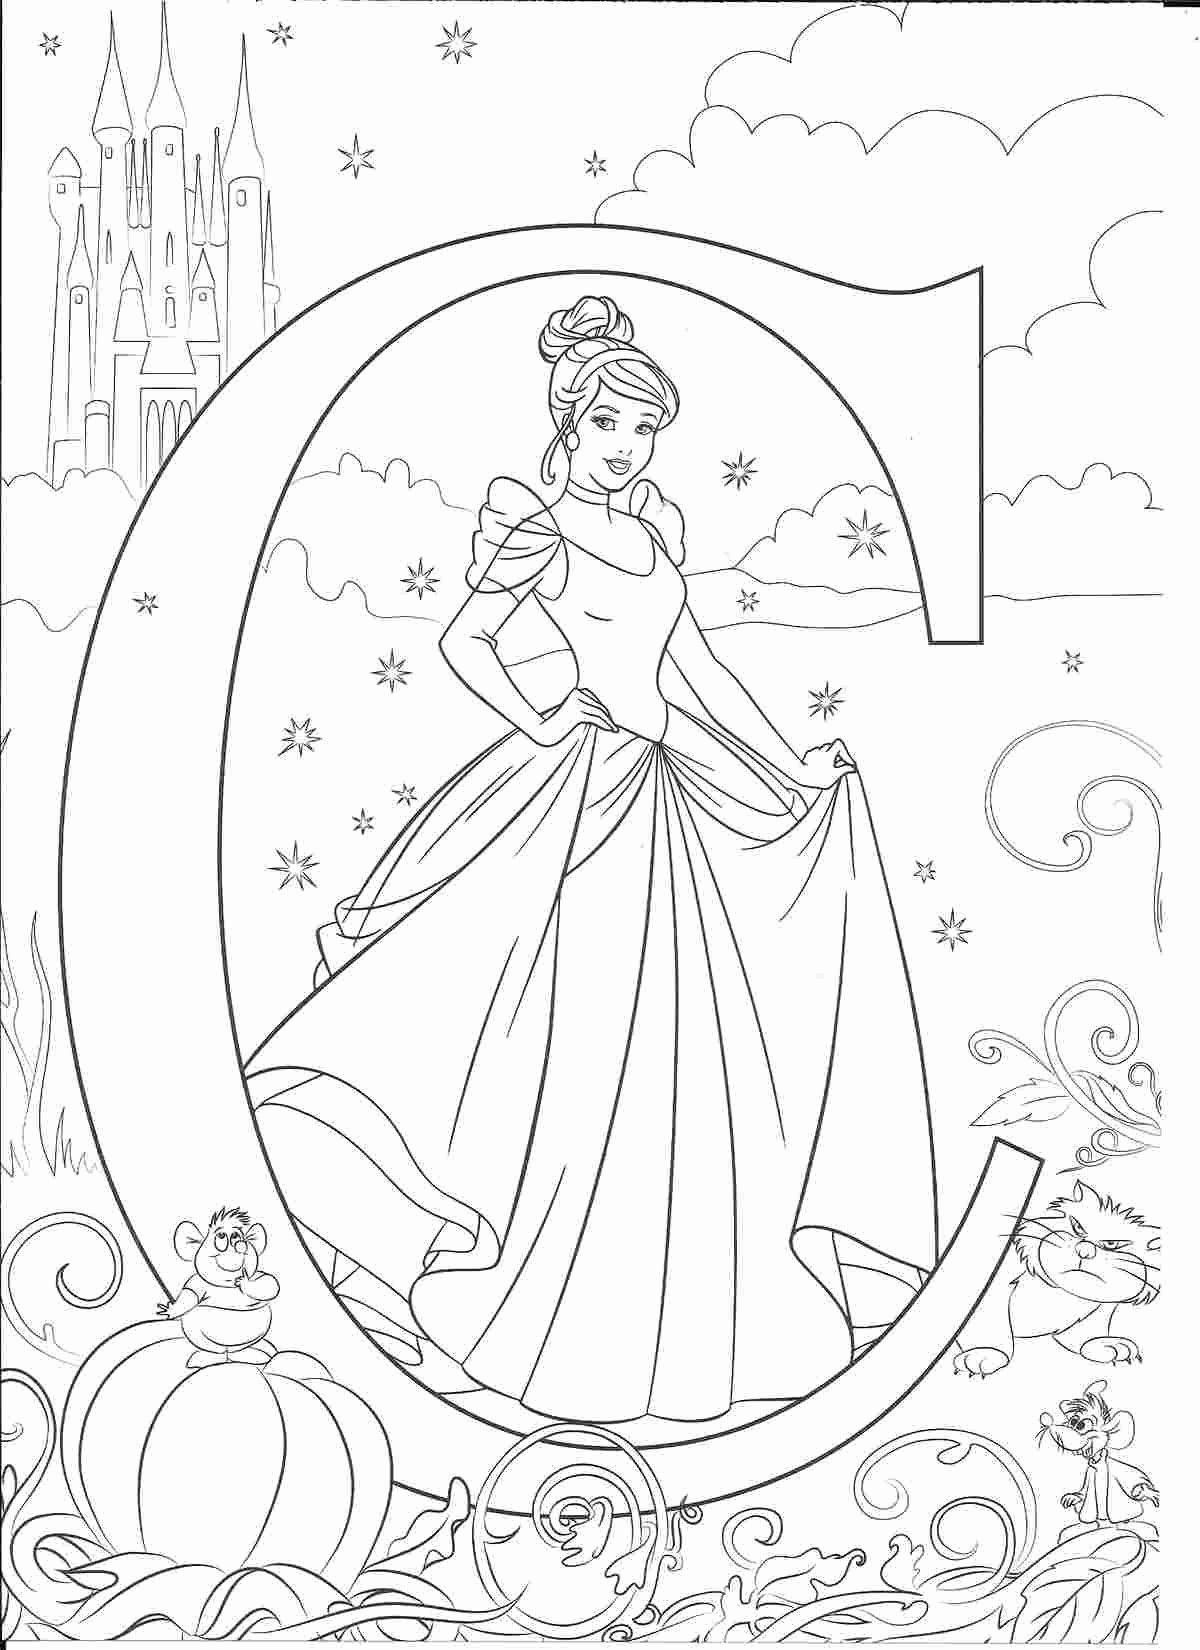 Coloring Pages Animals Homes Inspirational Disney Abc Coloring Pages Pin By Mj Guerrero On In 2020 Cinderella Coloring Pages Disney Coloring Sheets Abc Coloring Pages